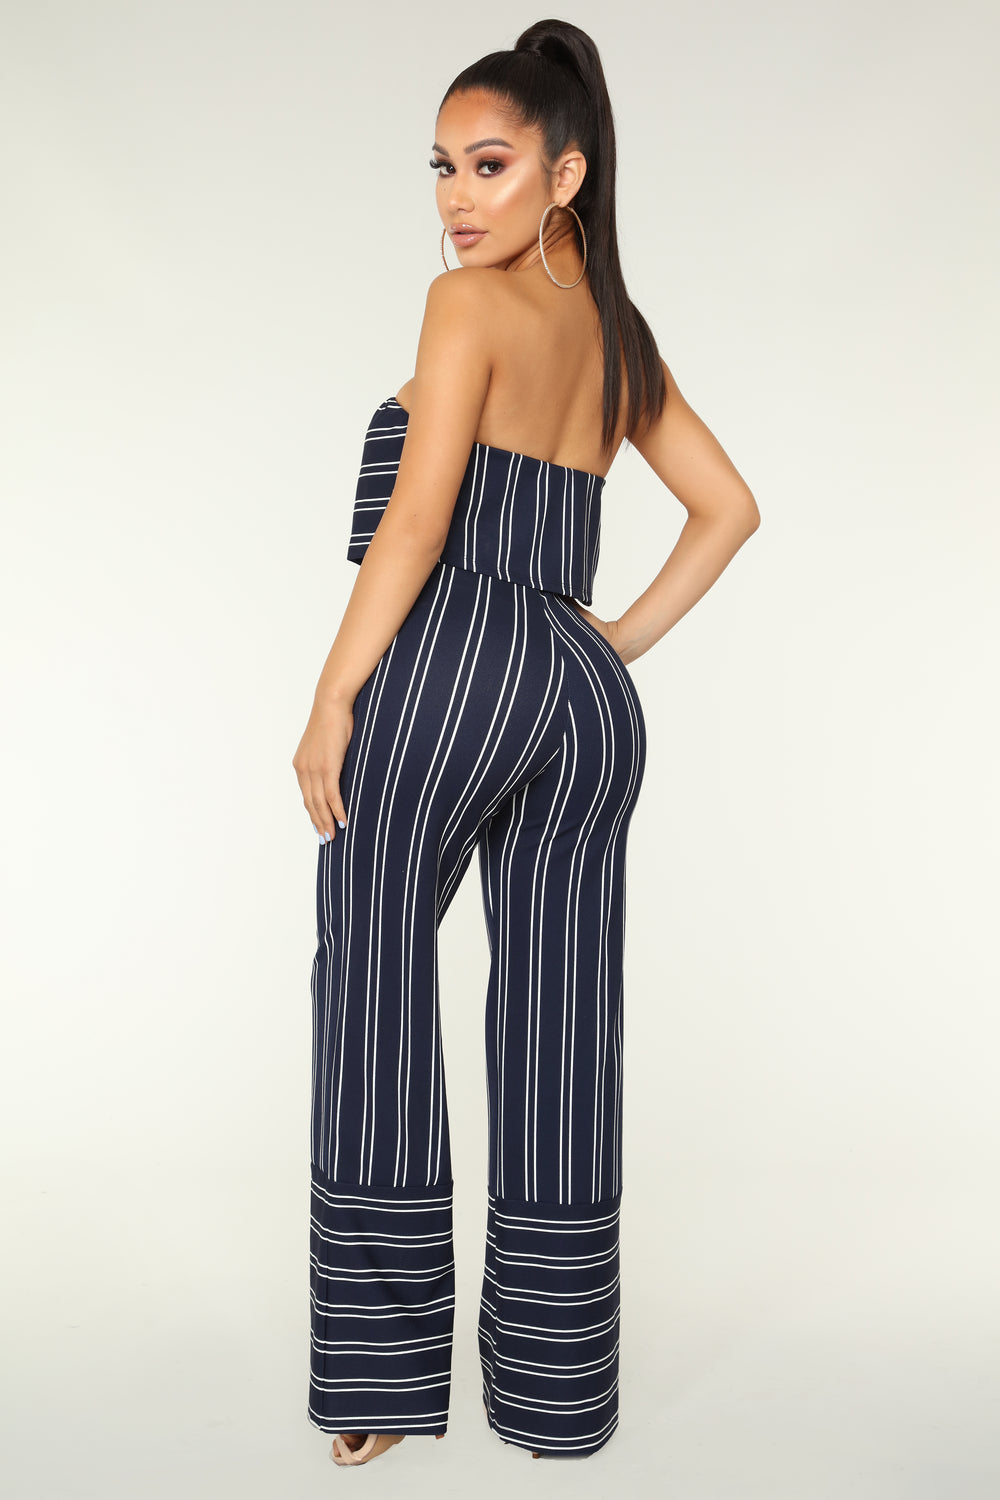 Friend Zone Stripe Jumpsuit - Navy